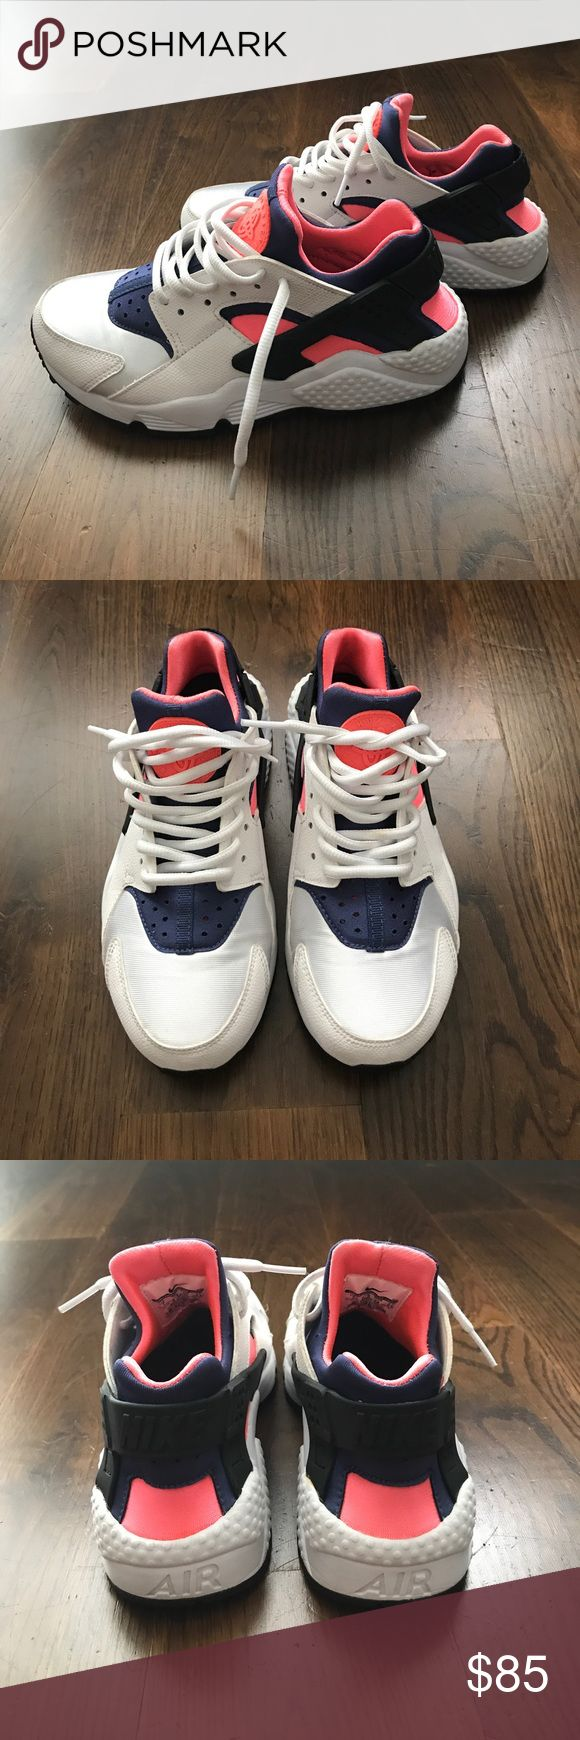 Nike HUARACHES Women's Nike huaraches in white with blue and coral trim. Worn less than 5 times. Most comfortable sneakers or there! Runs 1/2 size small. I normally wear 6.5 but these are 7s. Nike Shoes Athletic Shoes